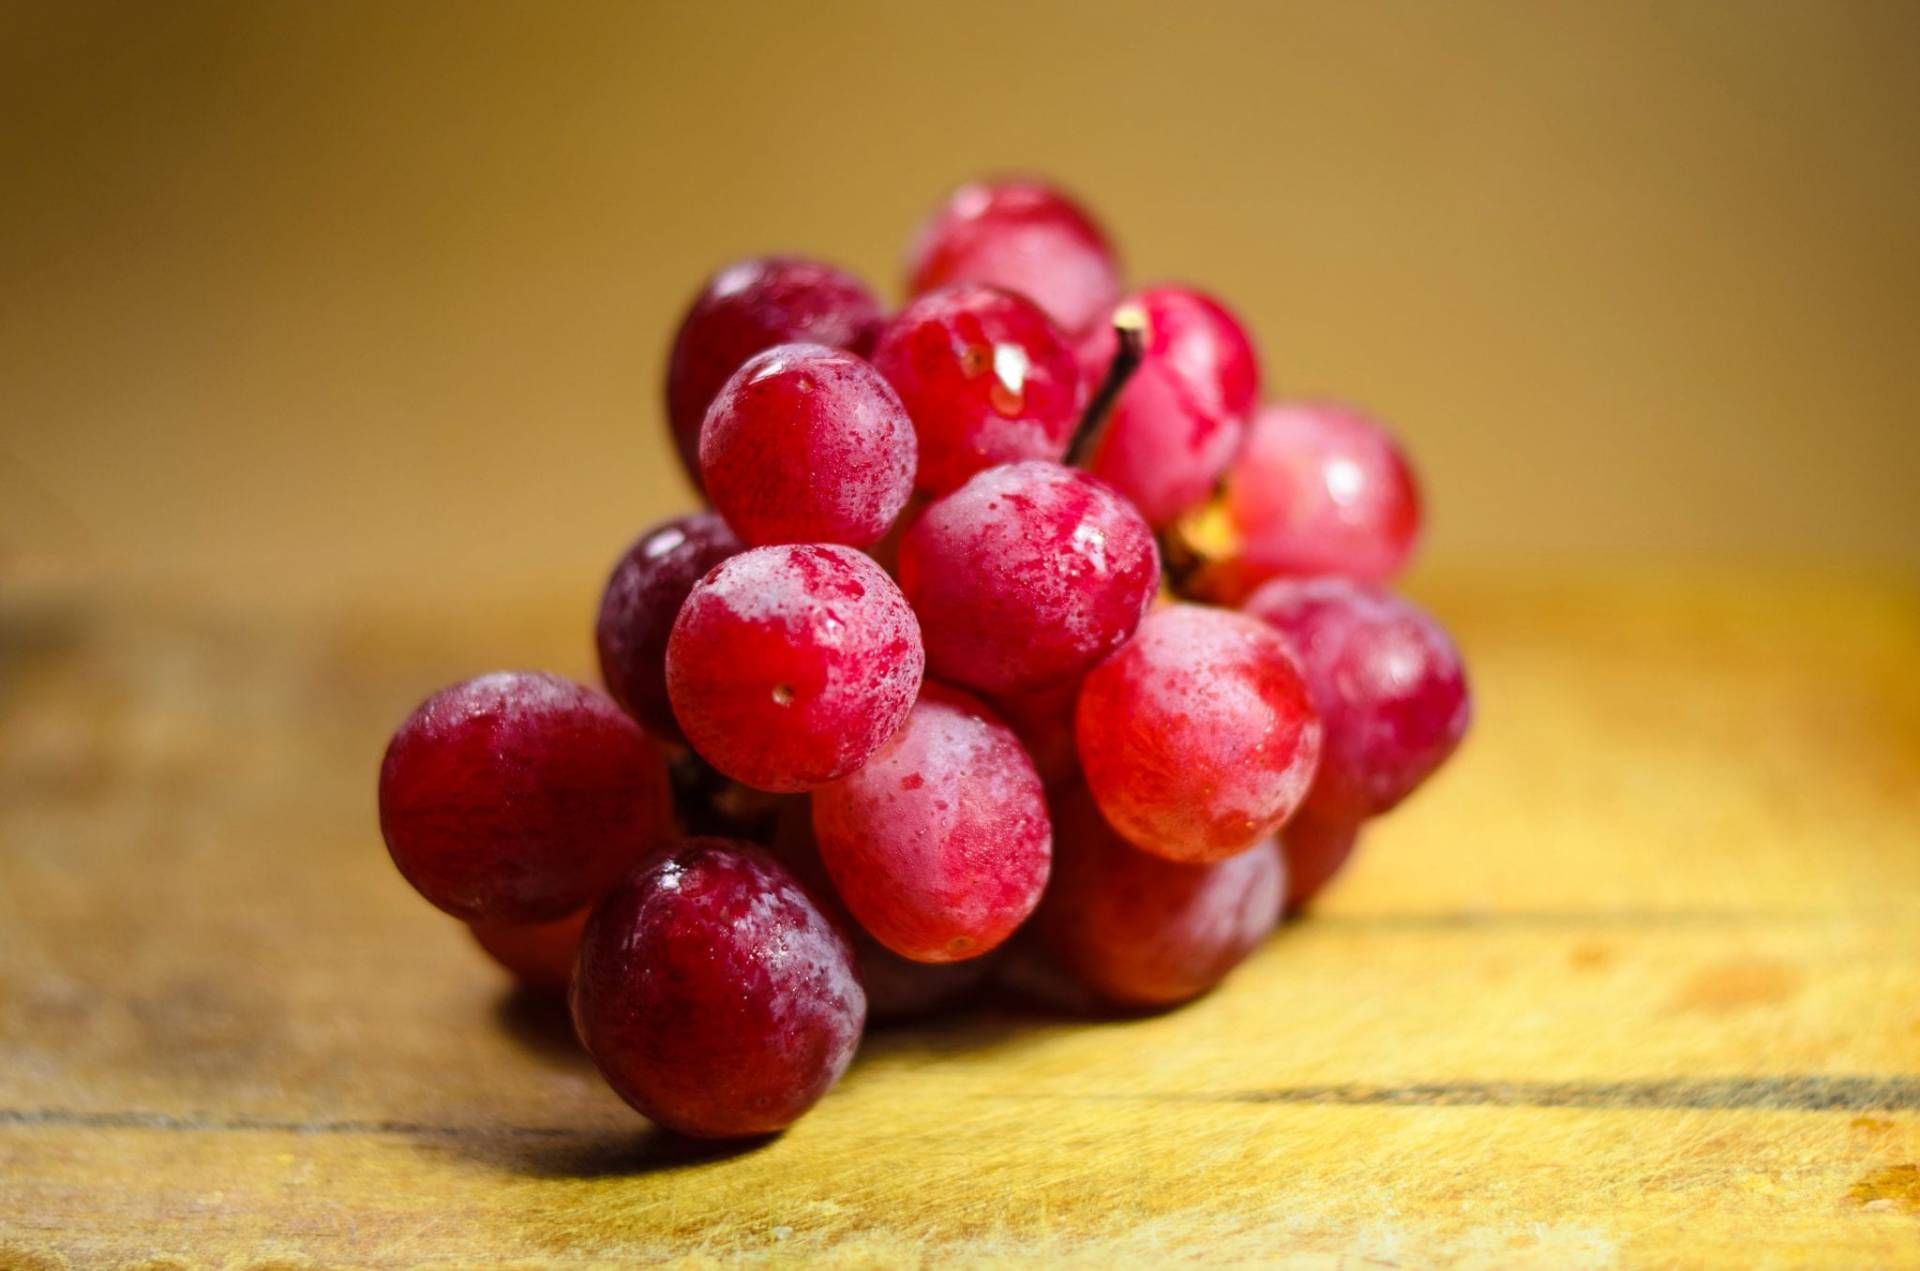 Employees love Red Grapes for snacks